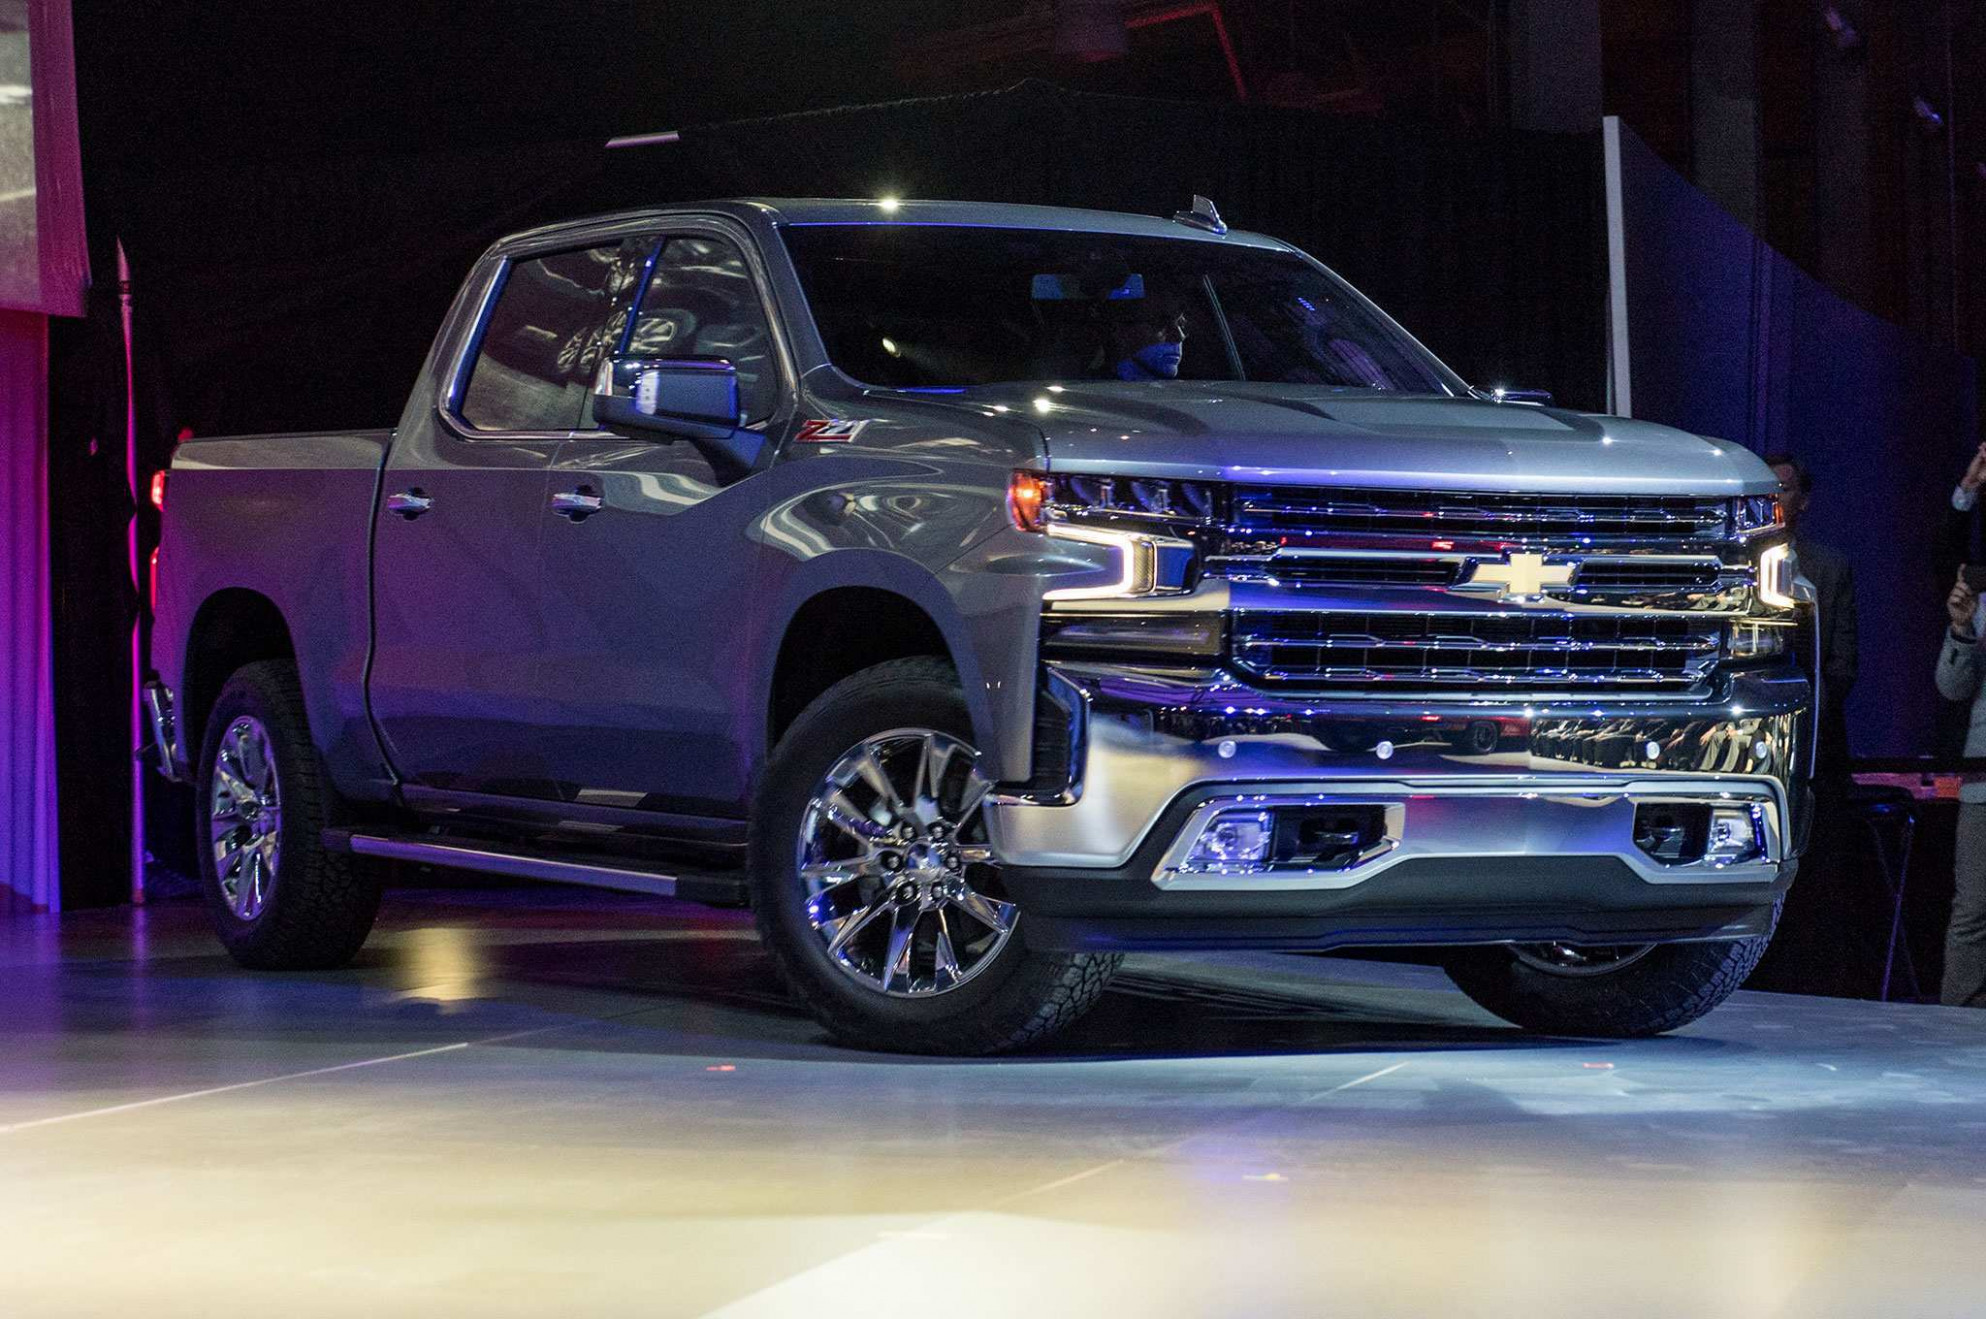 12 All New 12 Chevrolet Silverado 12 Ld Images for 12 ...